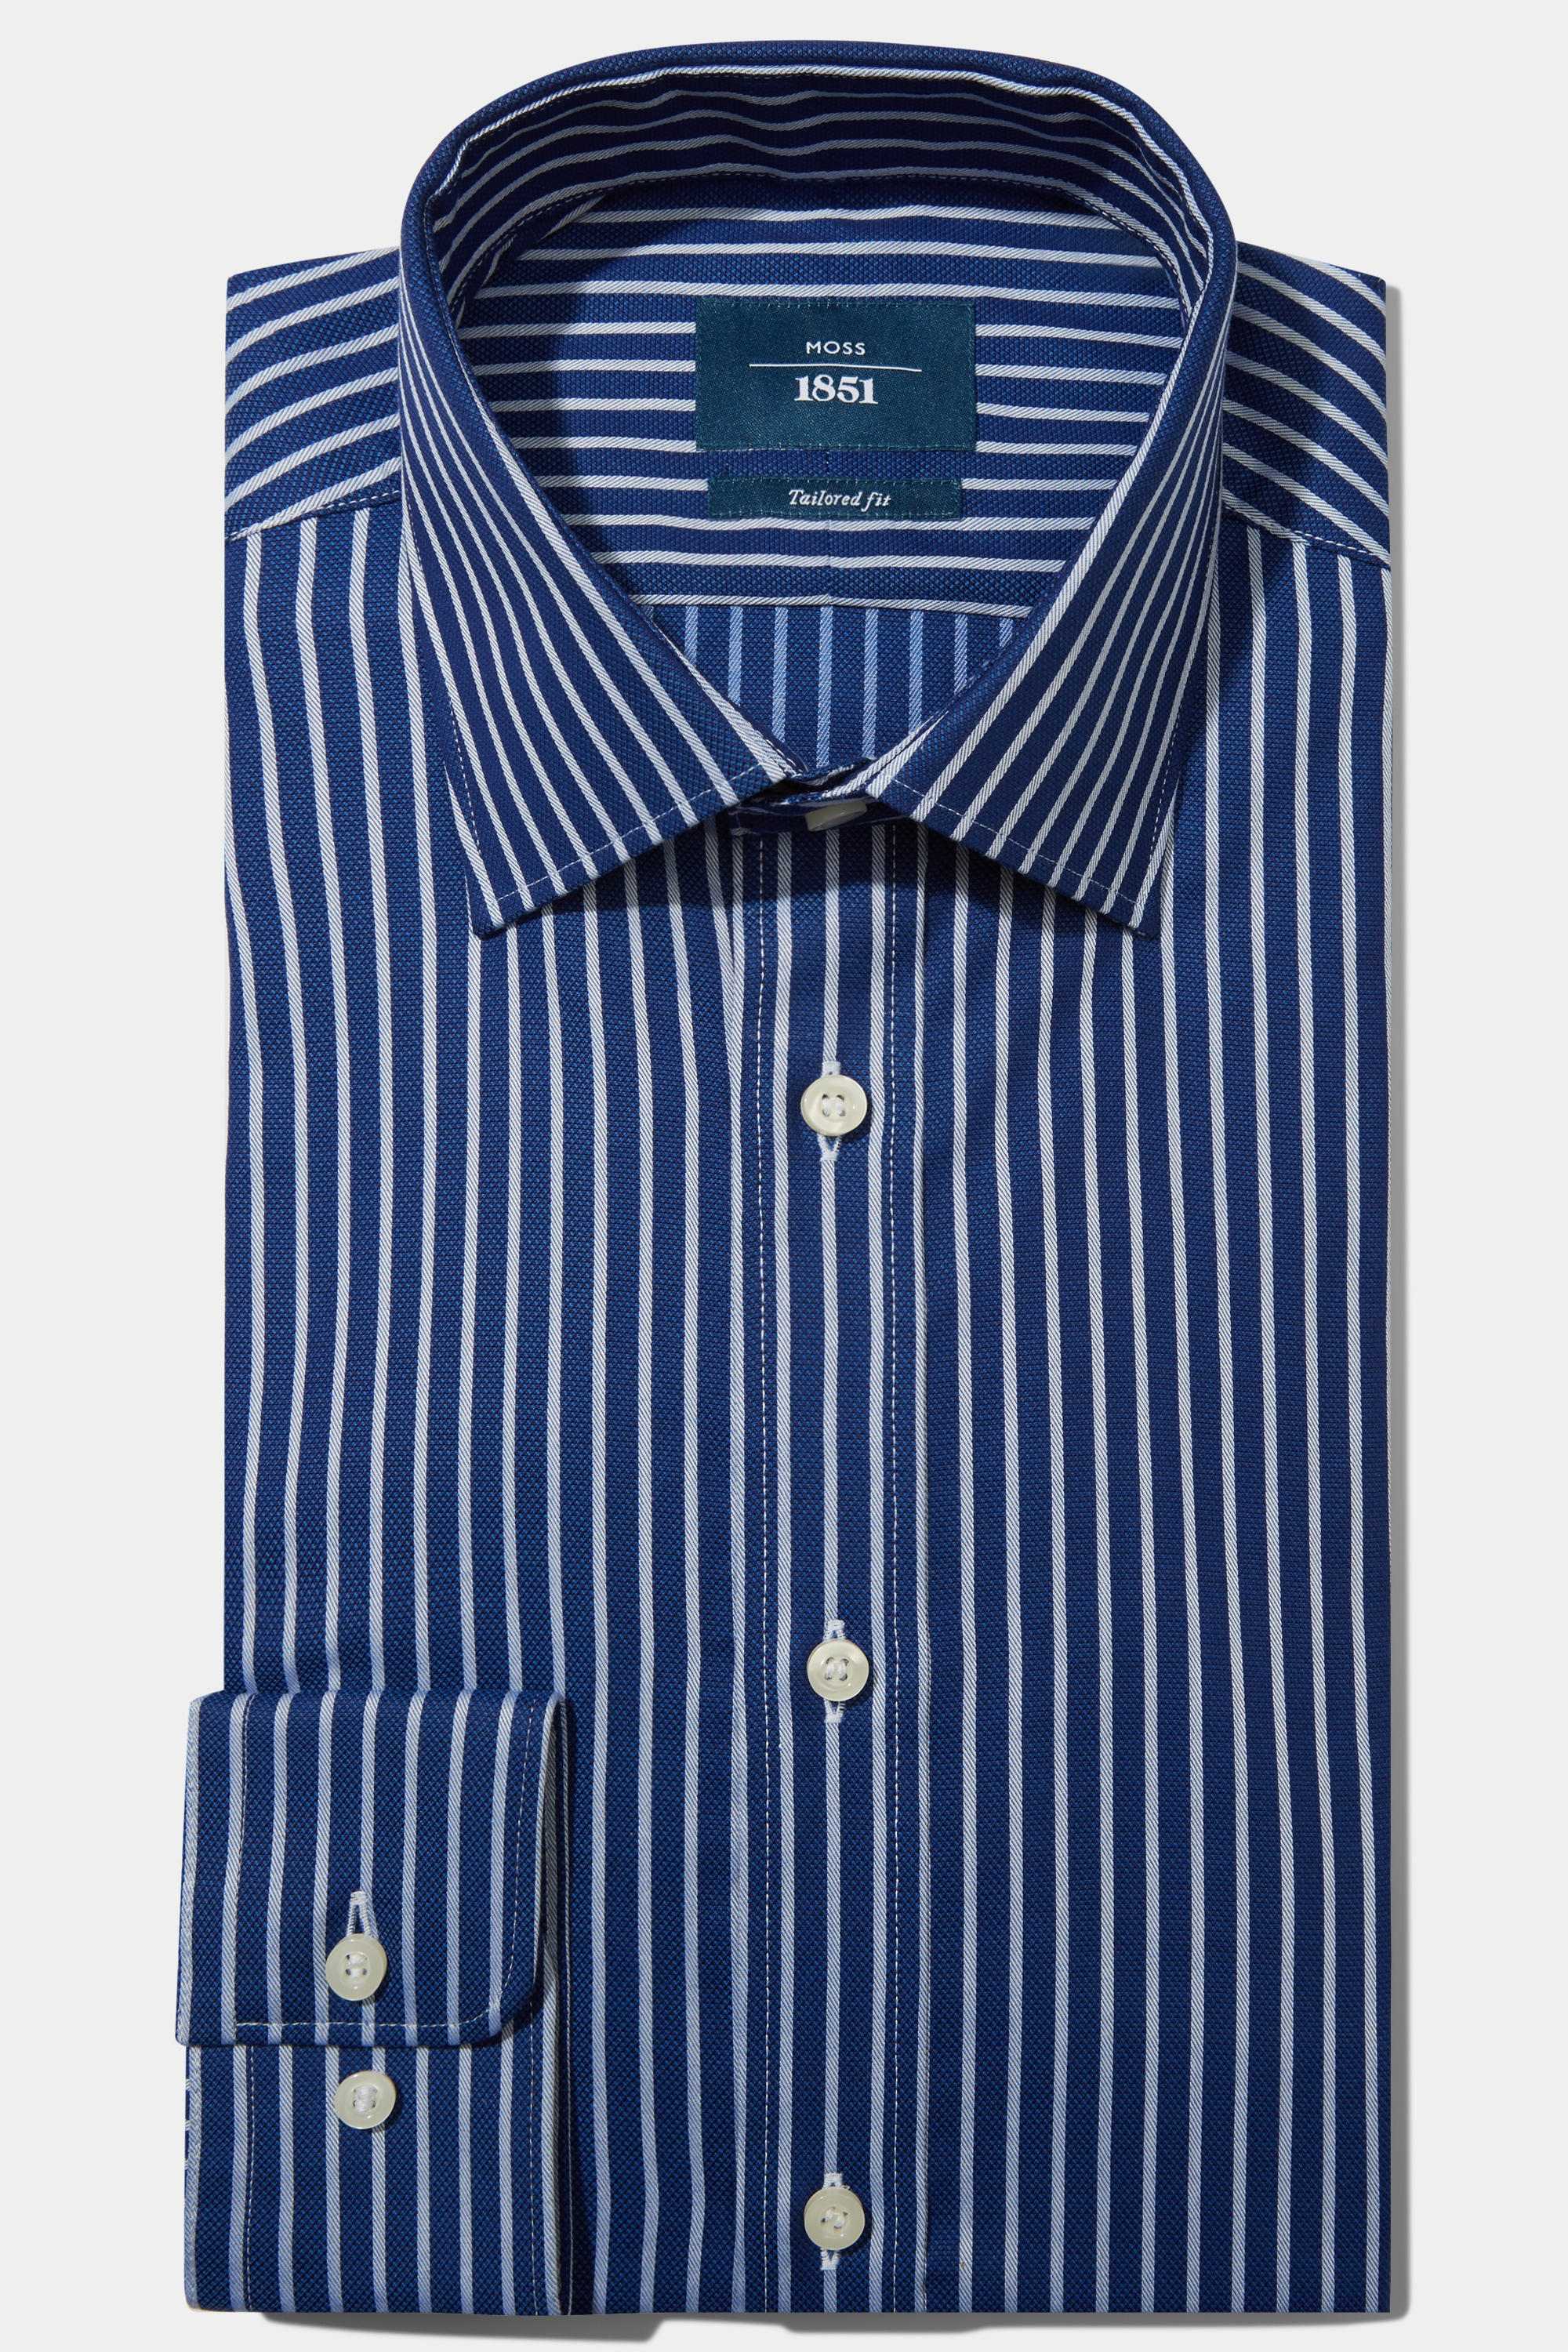 Moss Bros Moss 1851 Tailored Fit Navy Single Cuff Textured Stripe Shirt